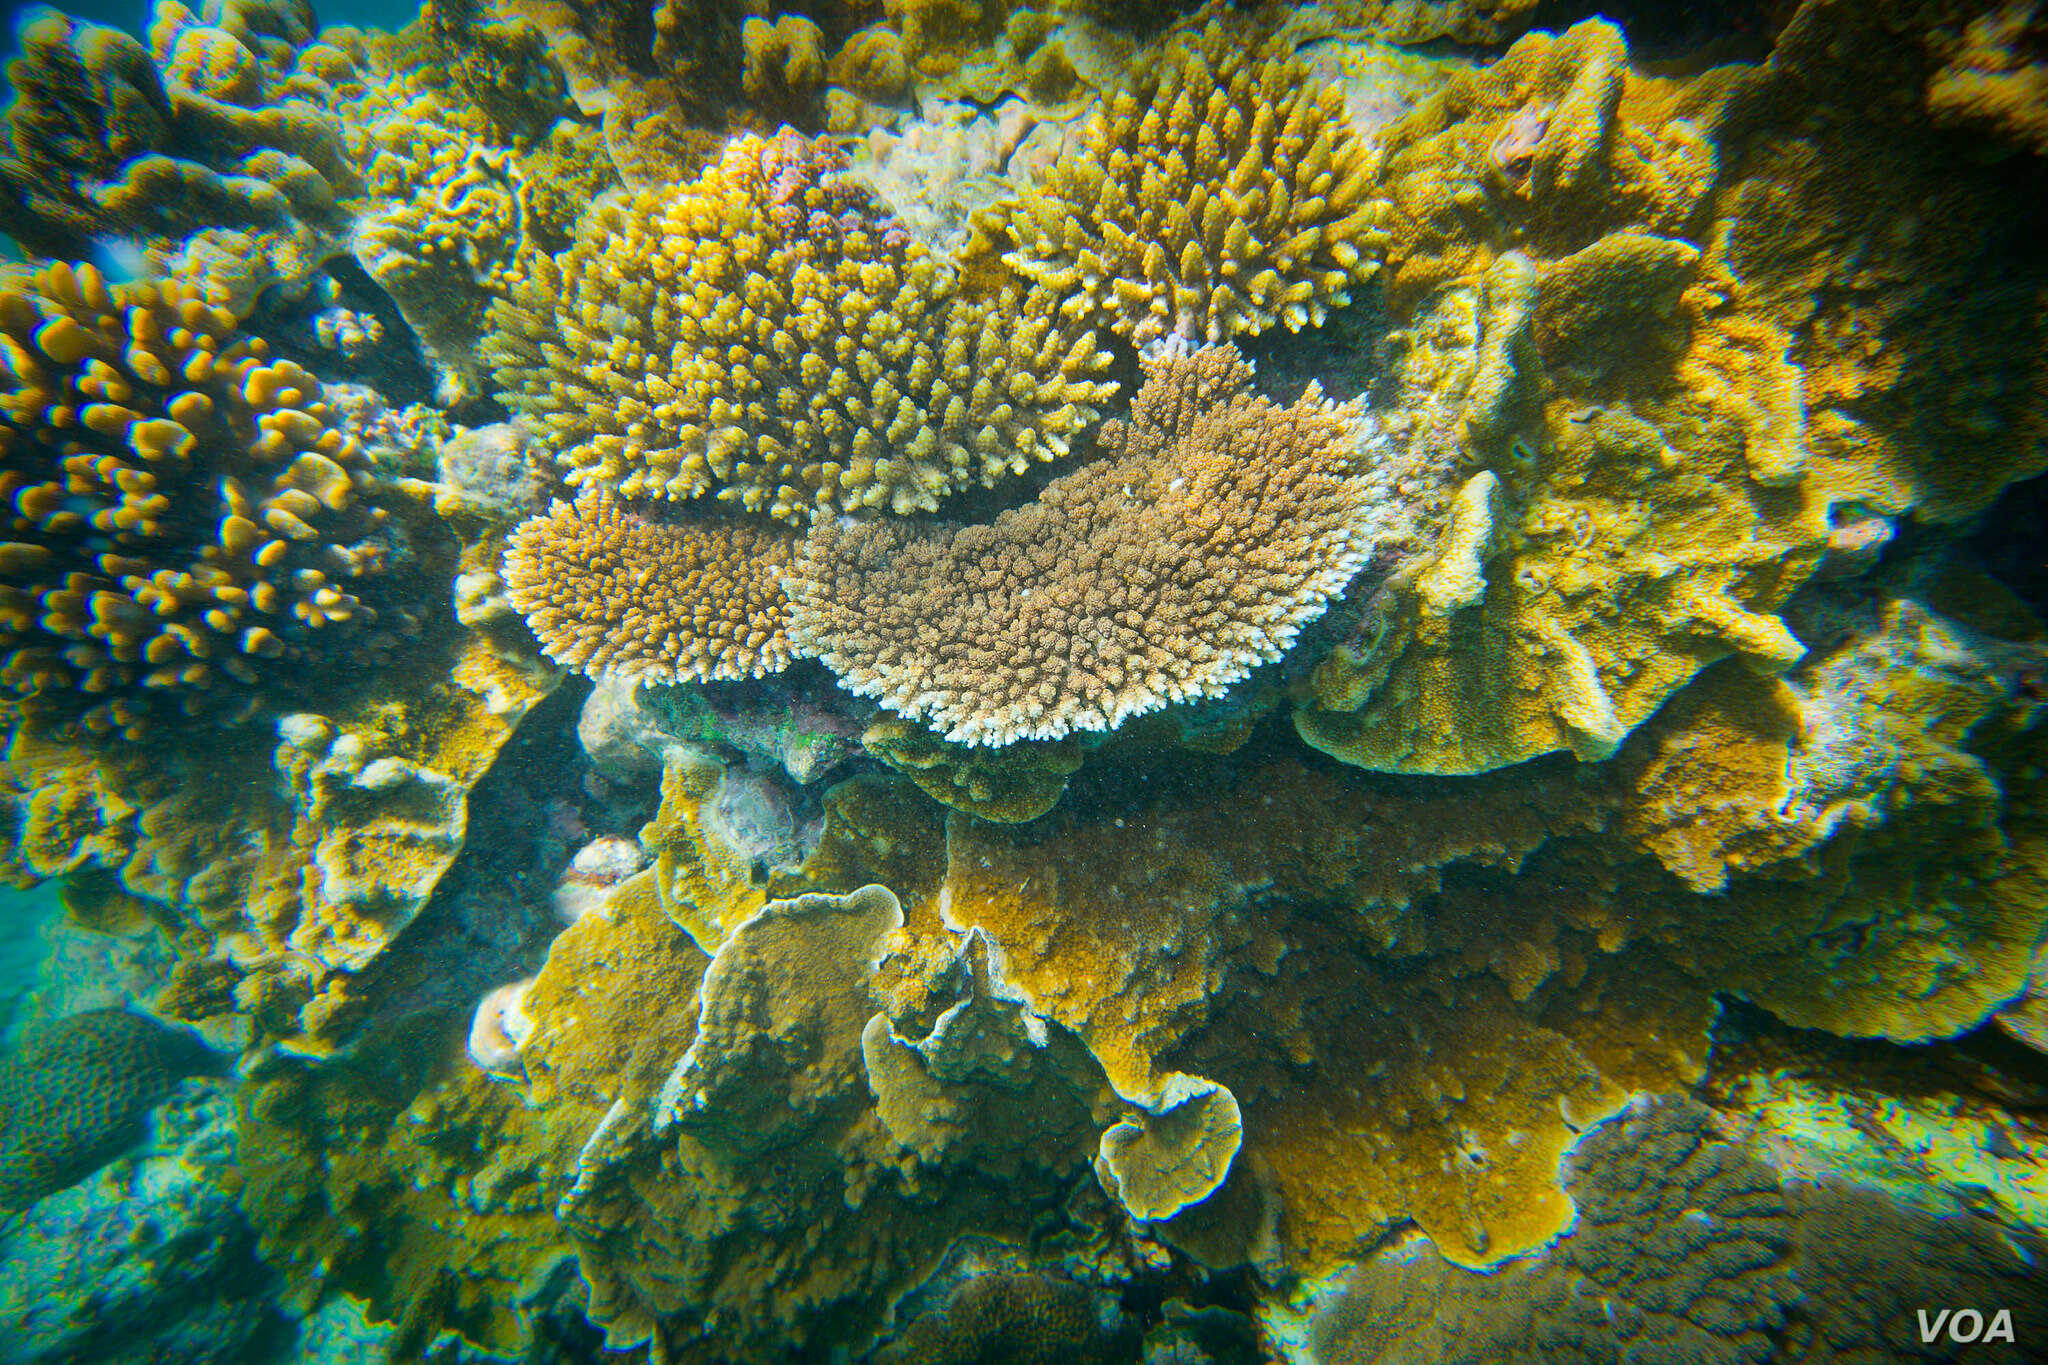 Onshore coral, Lady Elliot Island, Great Barrier Reef, Queensland, Australia, March 20, 2015, (Courtesy Image, DFAT / Patrick Hamilton).